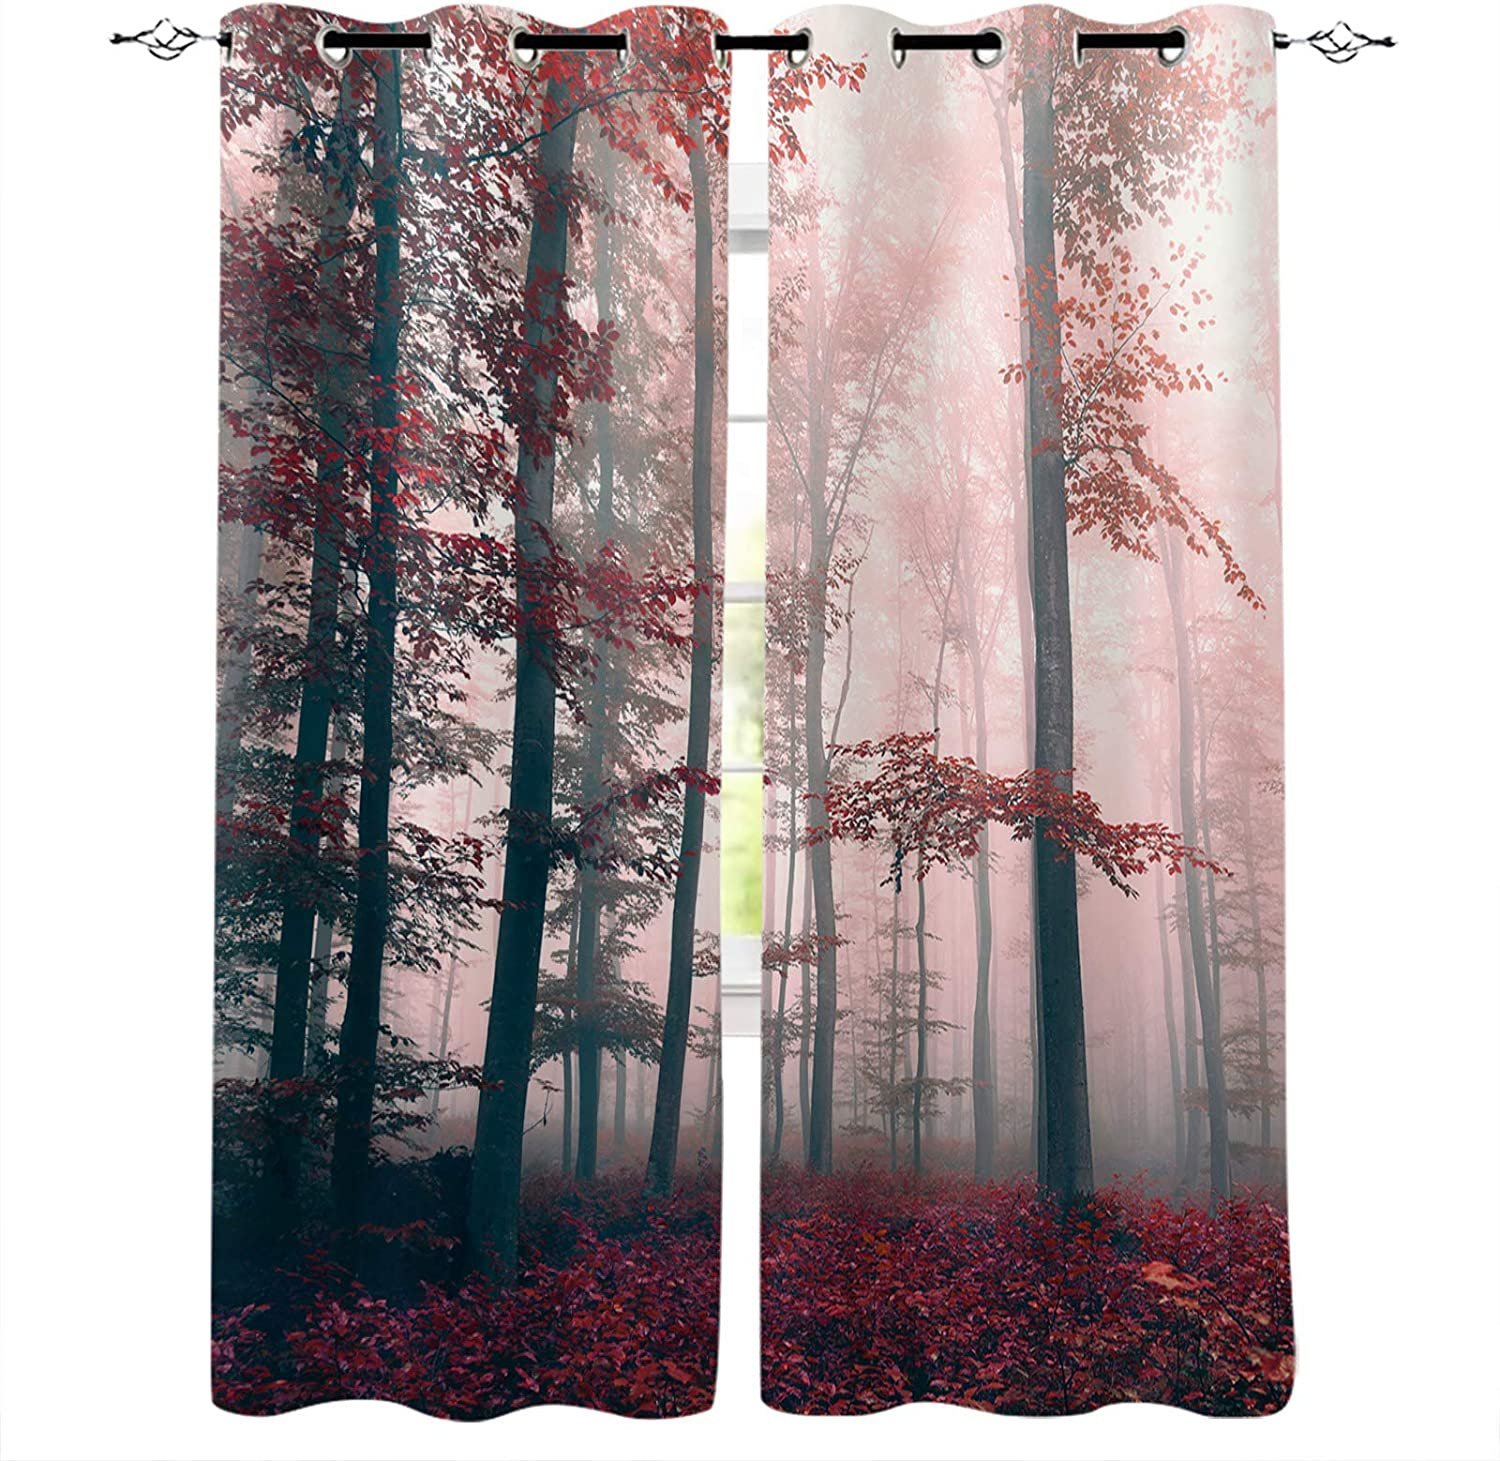 Window Curtains Free shipping Tropical Red Mystic Darkening Superior Panels Forest Room